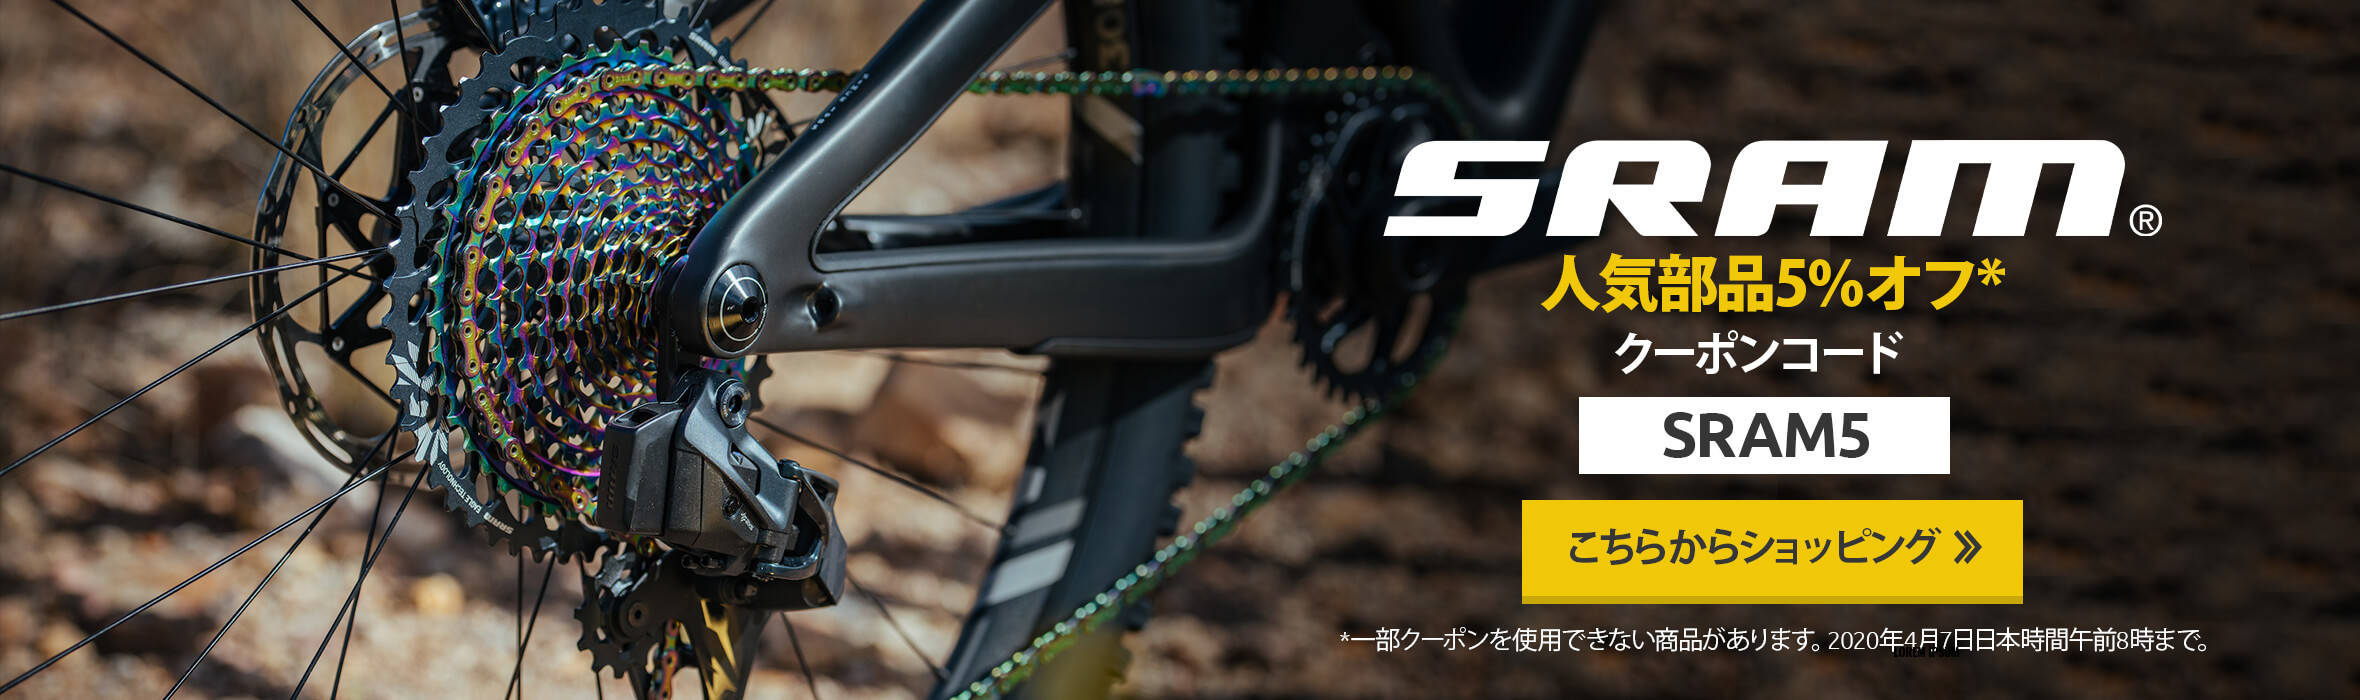 Save 5% on SRAM with Code SRAM5